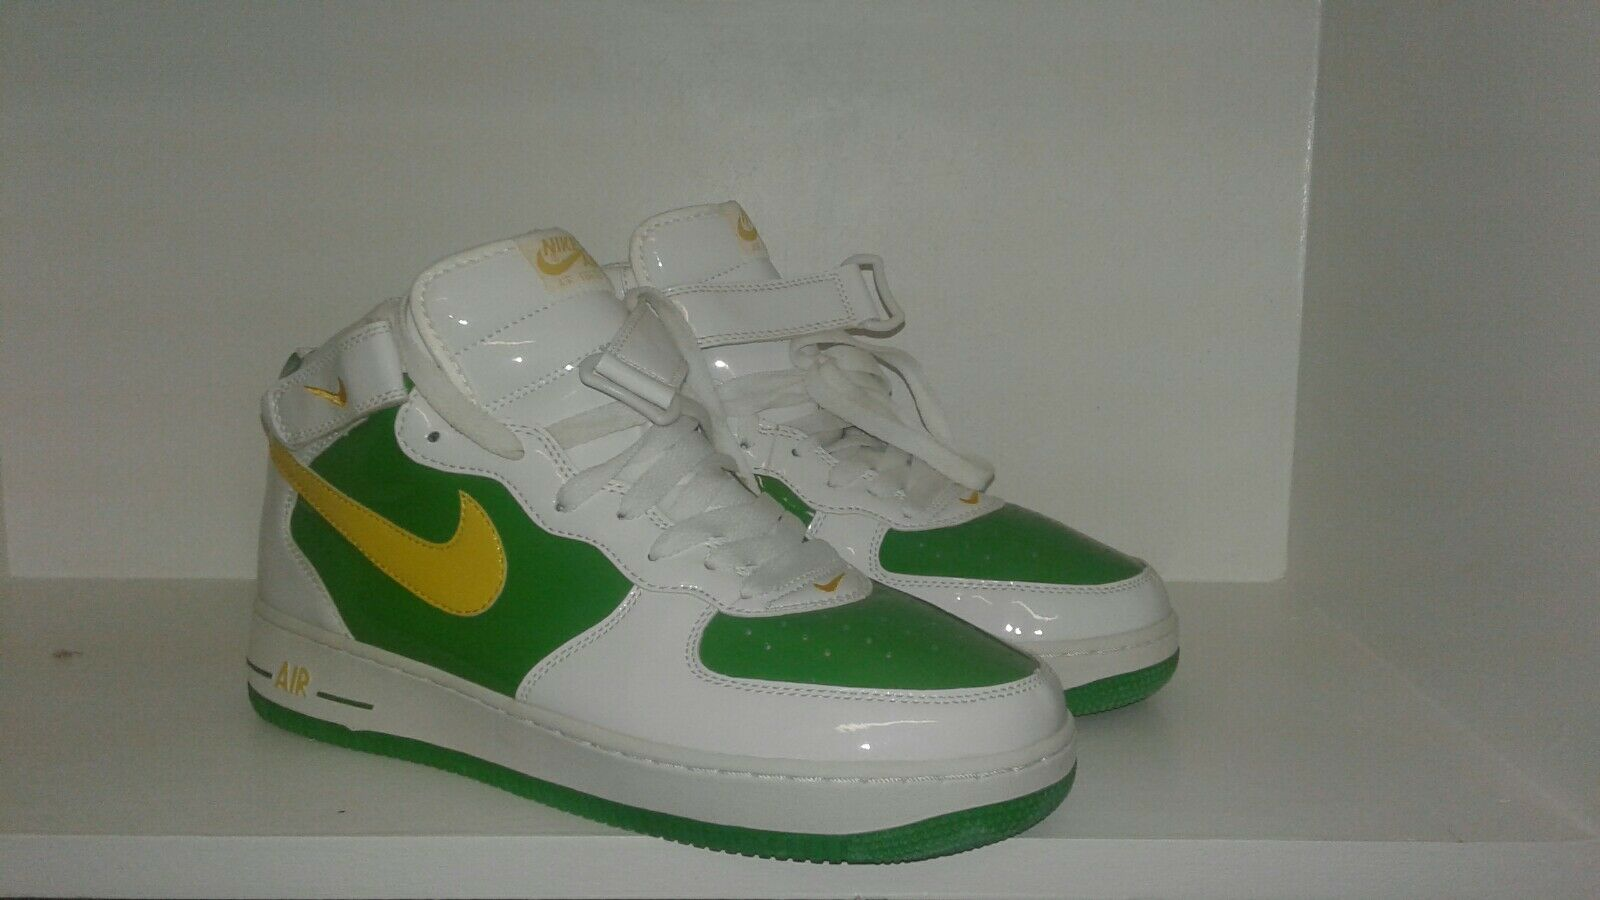 Nike Air Force One Green Yellow White mid sz 11.5